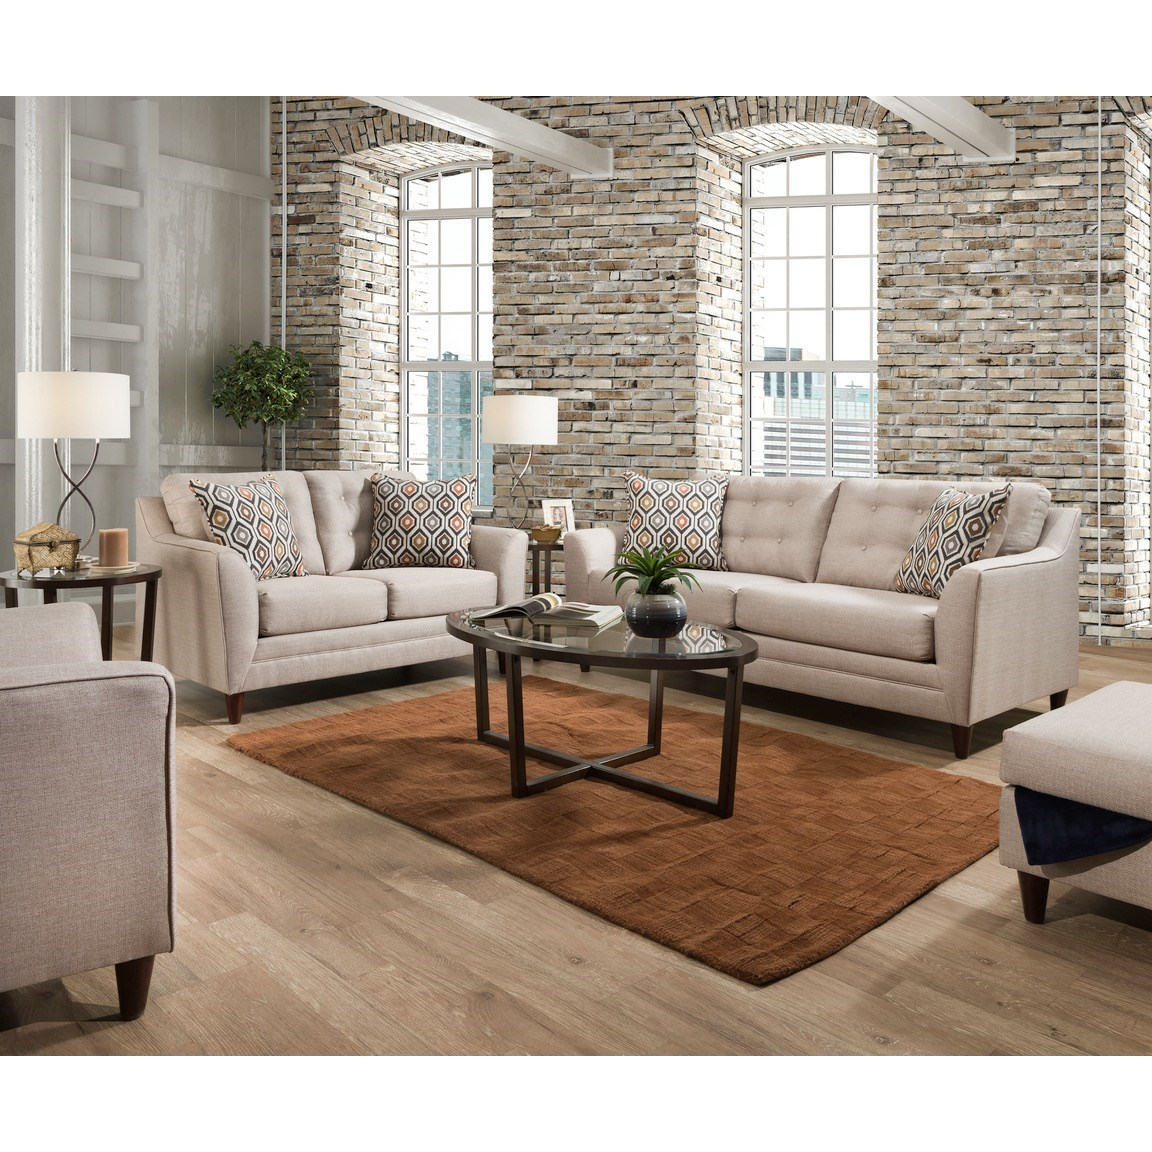 8126 Stationary Living Room Group by United Furniture Industries at Del Sol Furniture